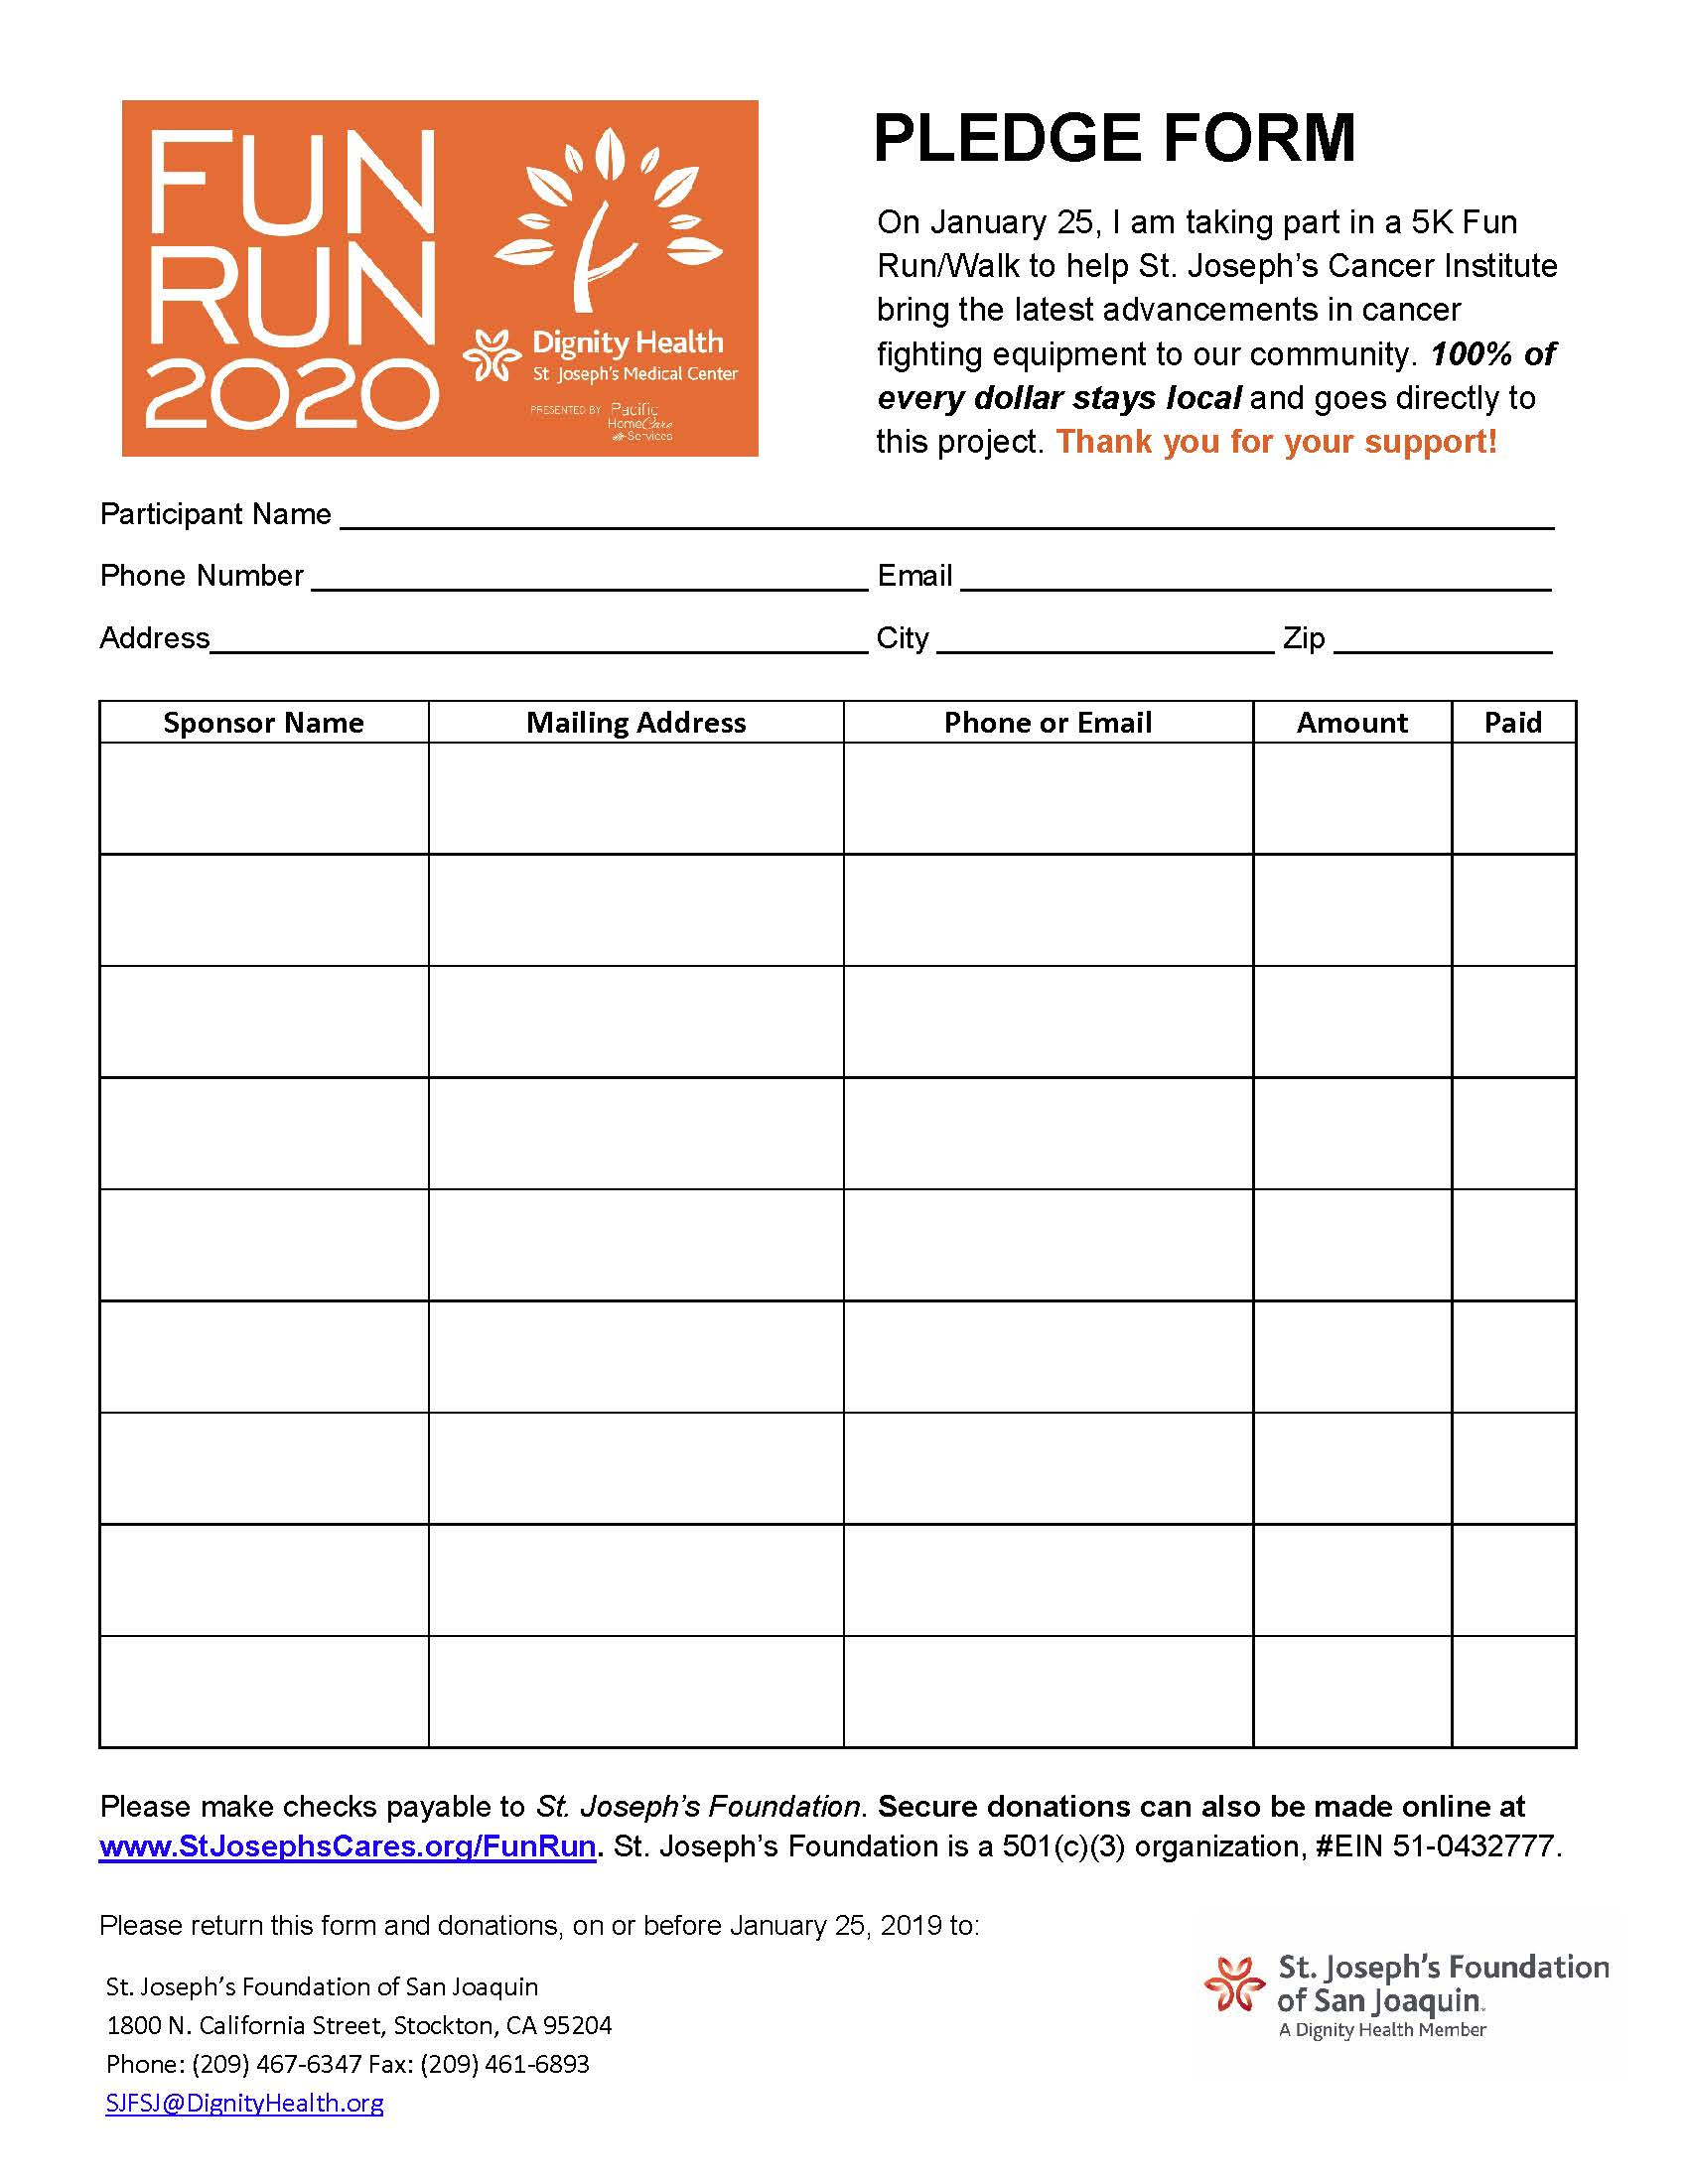 2020 Fun Run Pledge Form